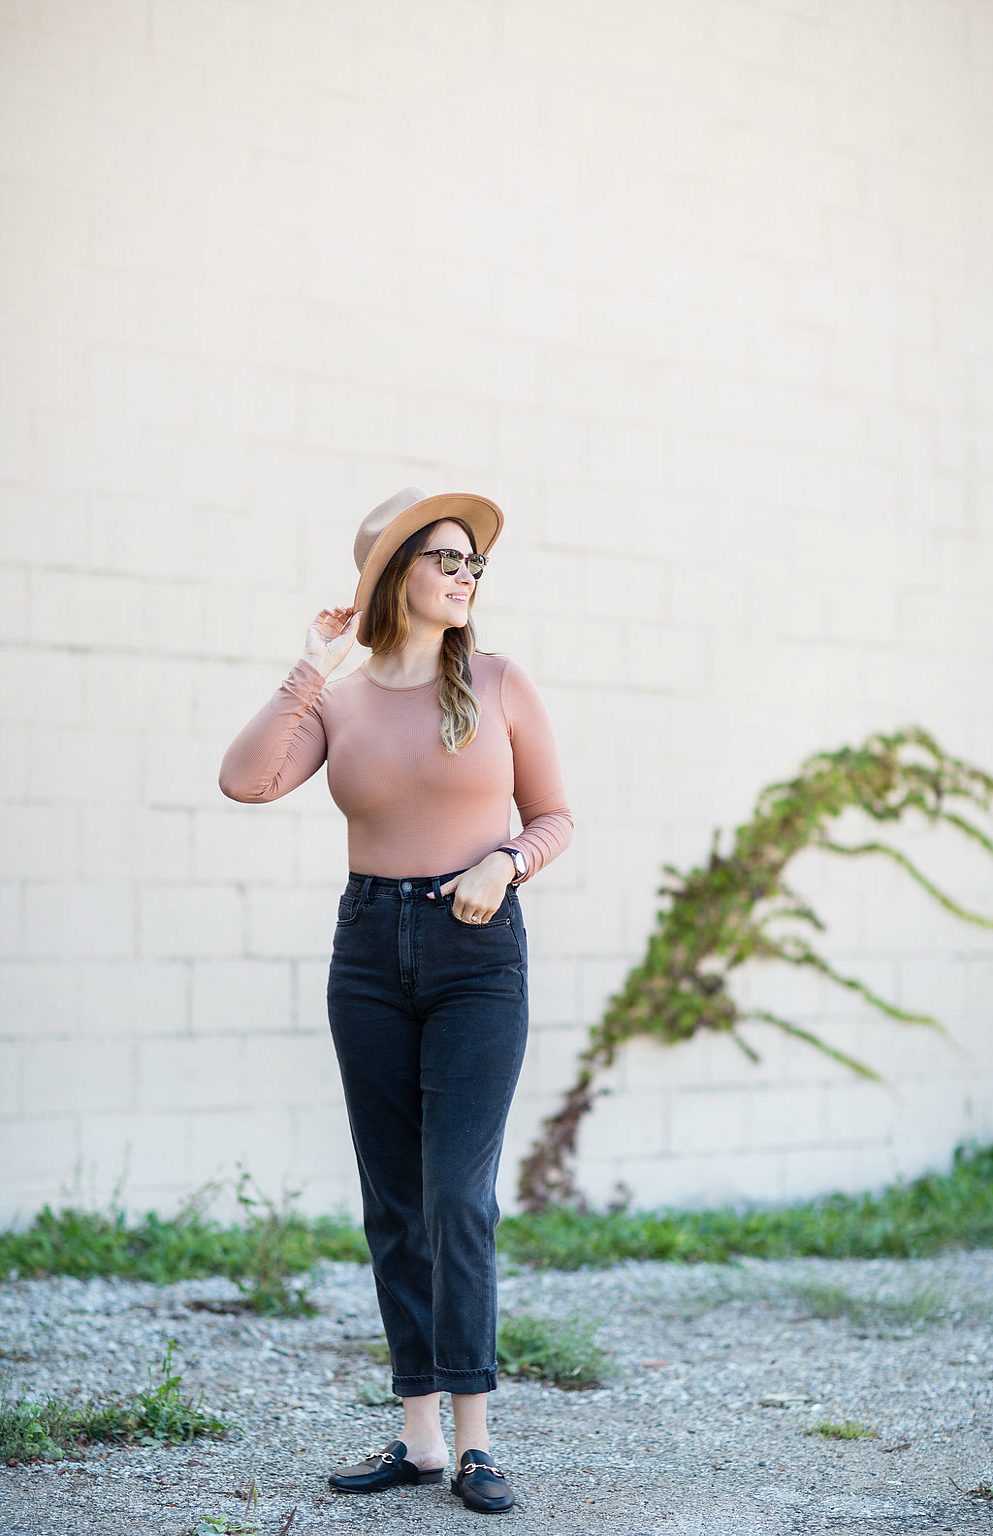 fall-trends-2017-bomber-jacket-felt-hat-mom-jeans-leather-mules-rosecitystyleguide-devonshire-mall